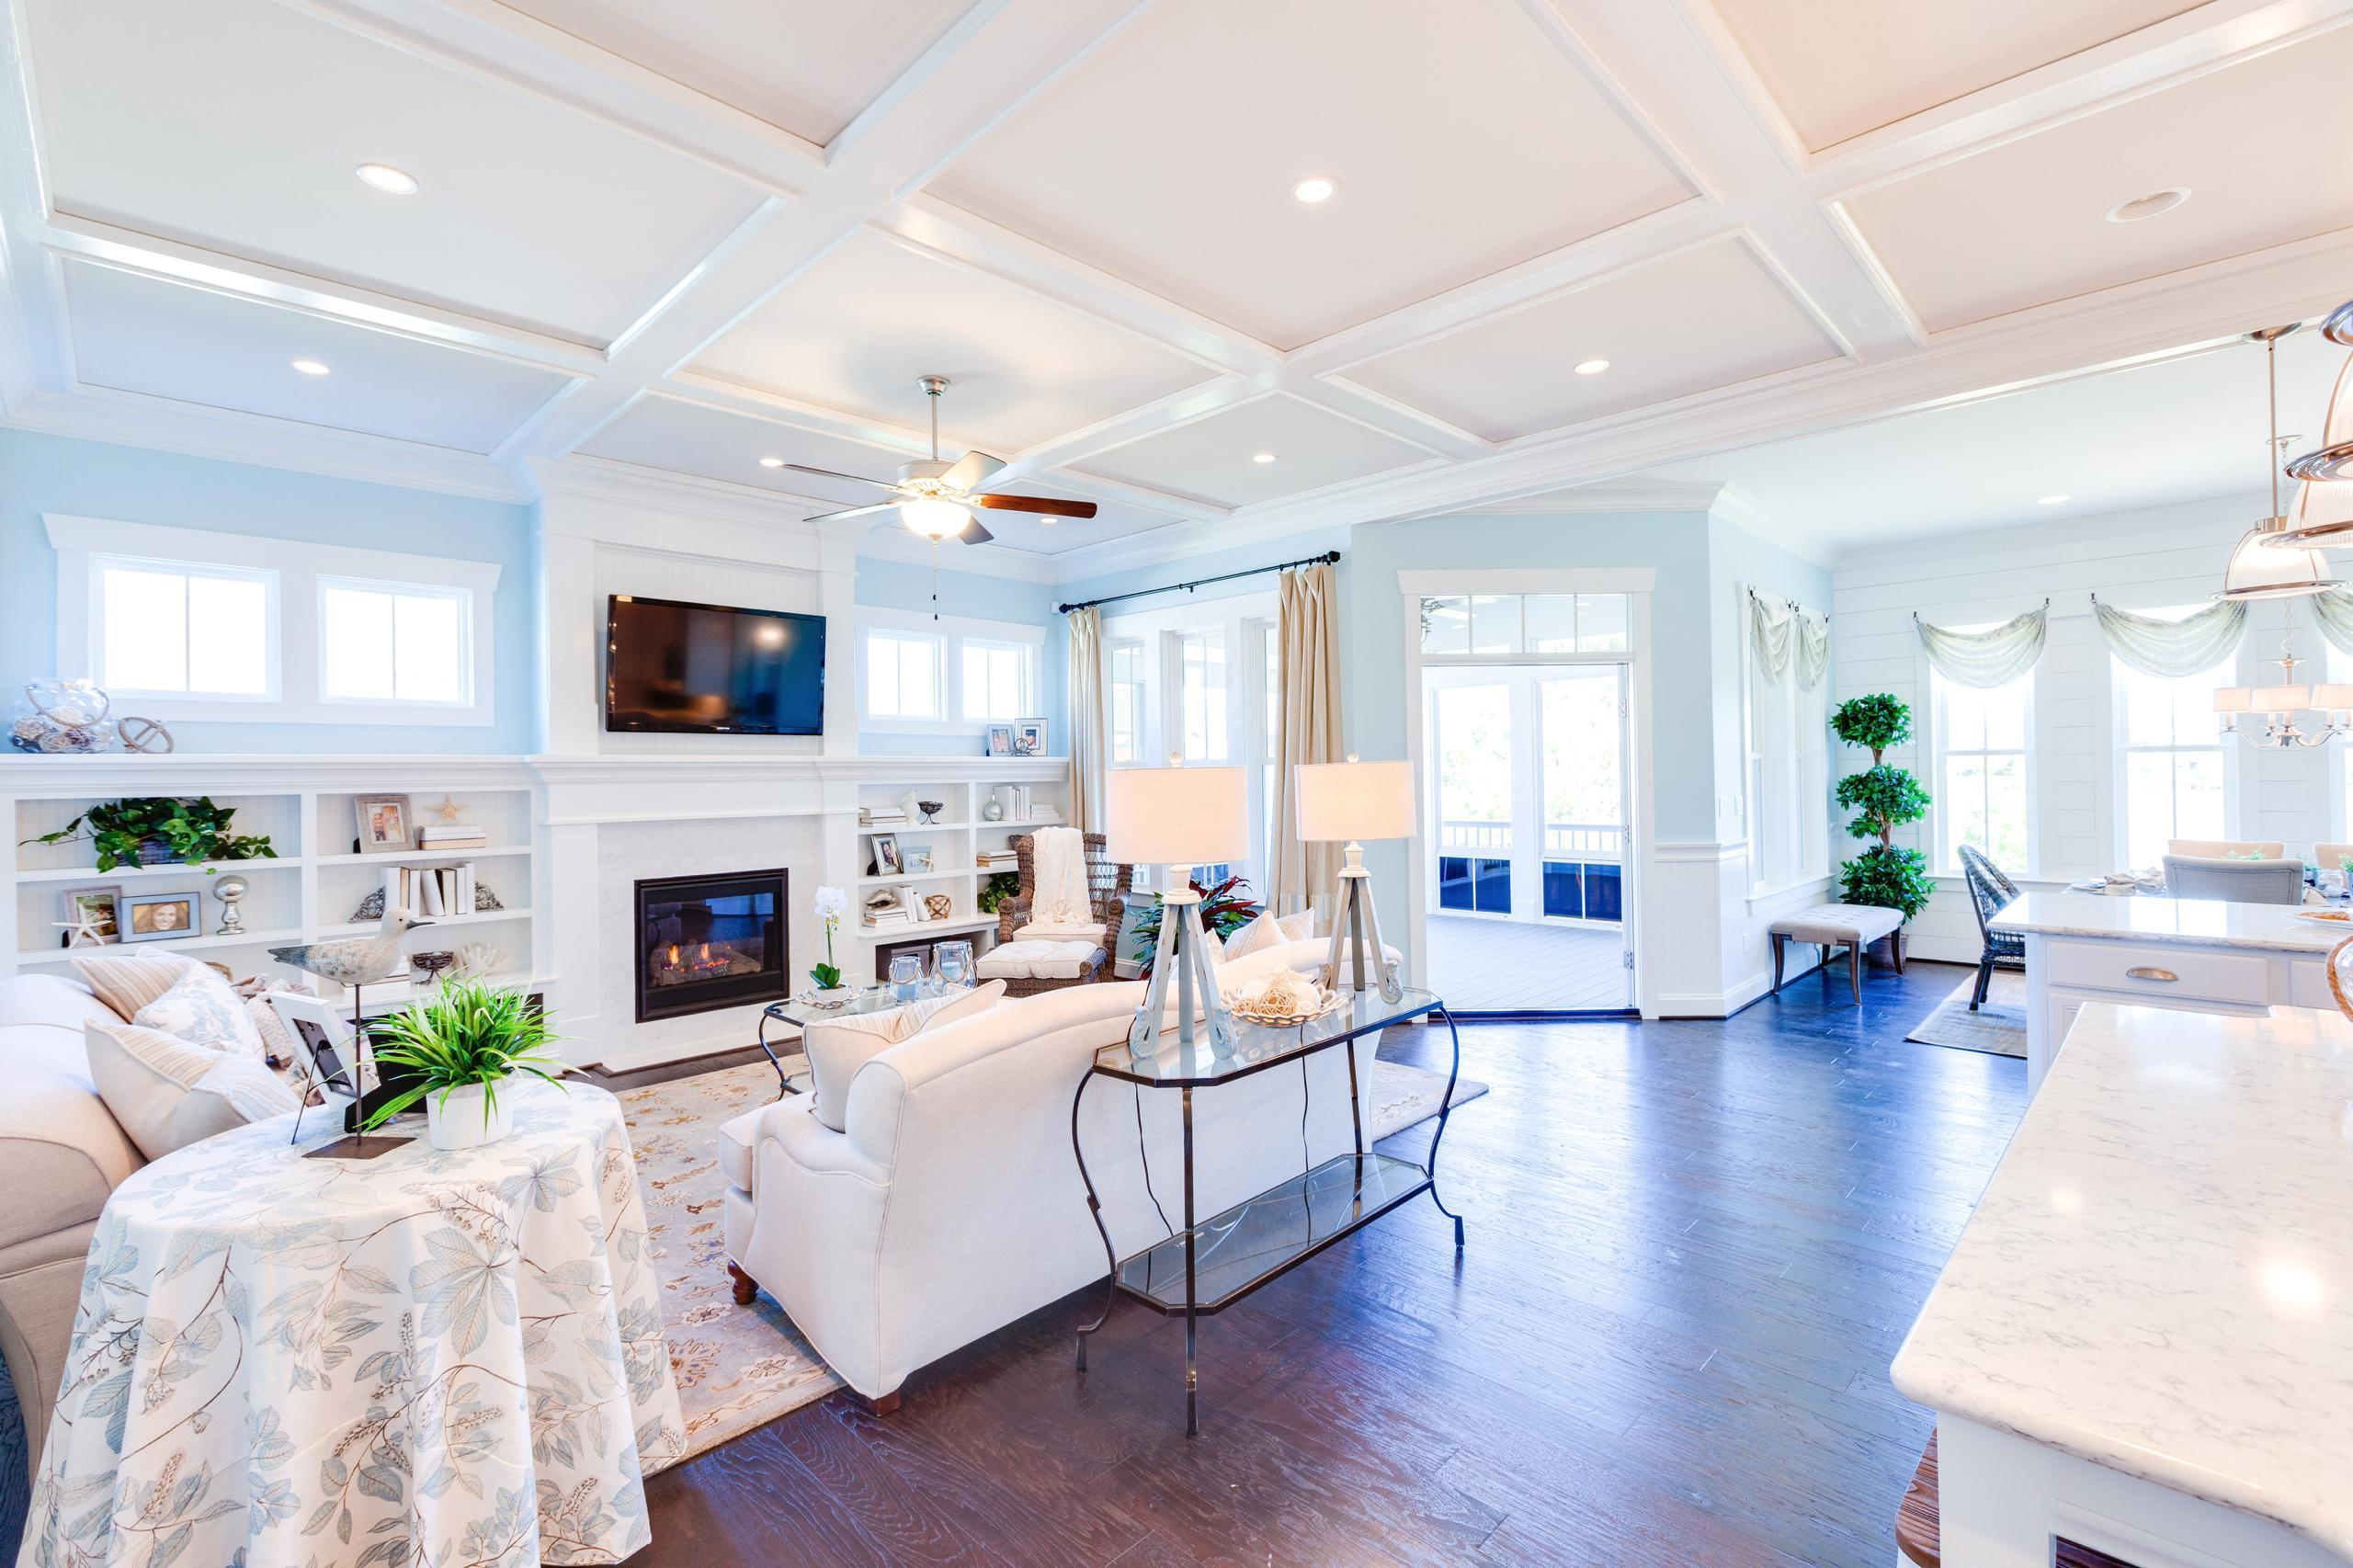 Living Area featured in the Cottage Ashland By Stephen Alexander Homes in Outer Banks, NC